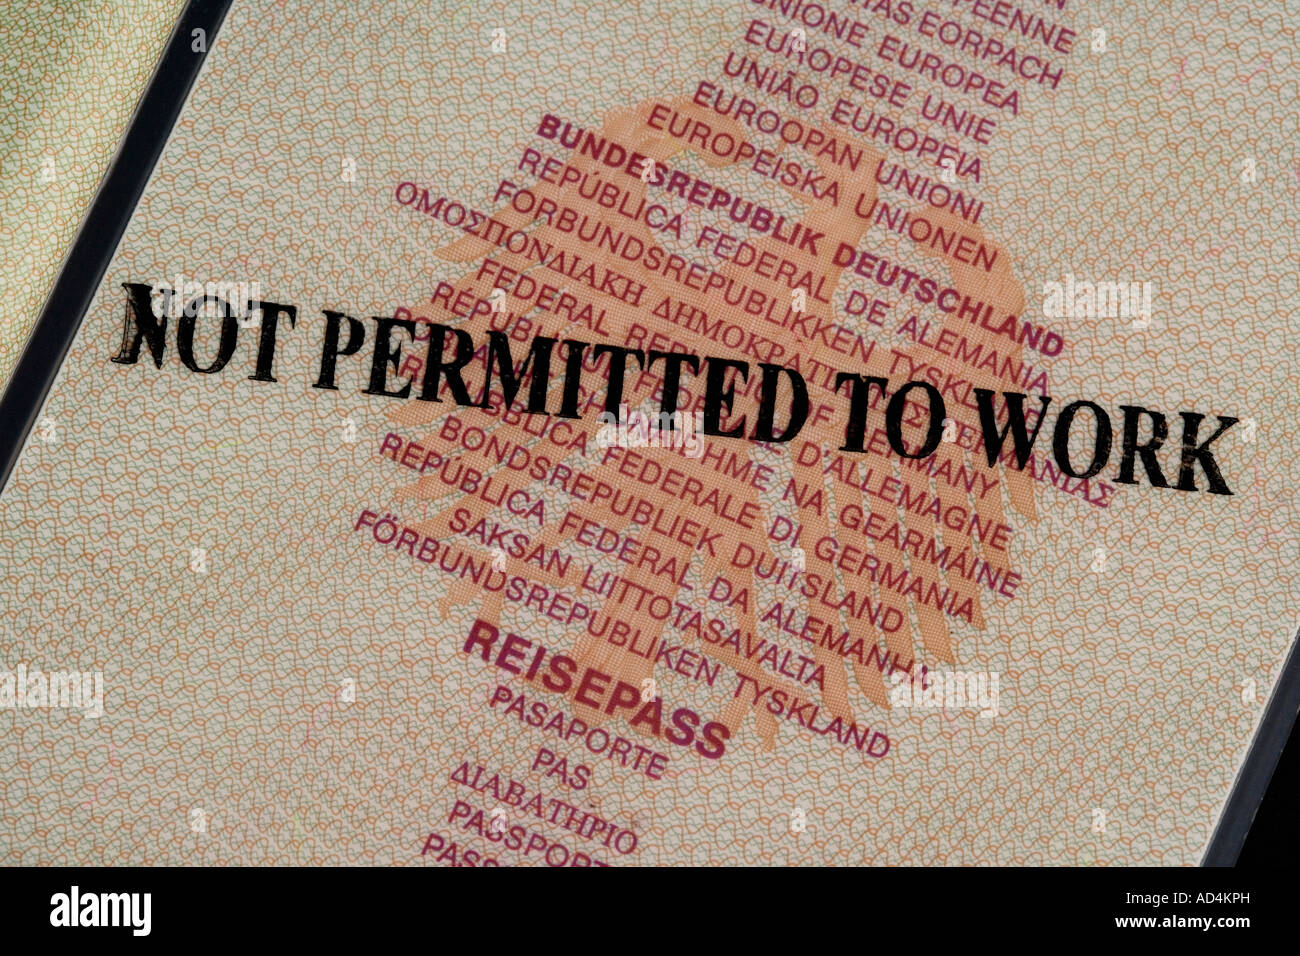 A German passport stamped 'Not Permitted To Work' - Stock Image